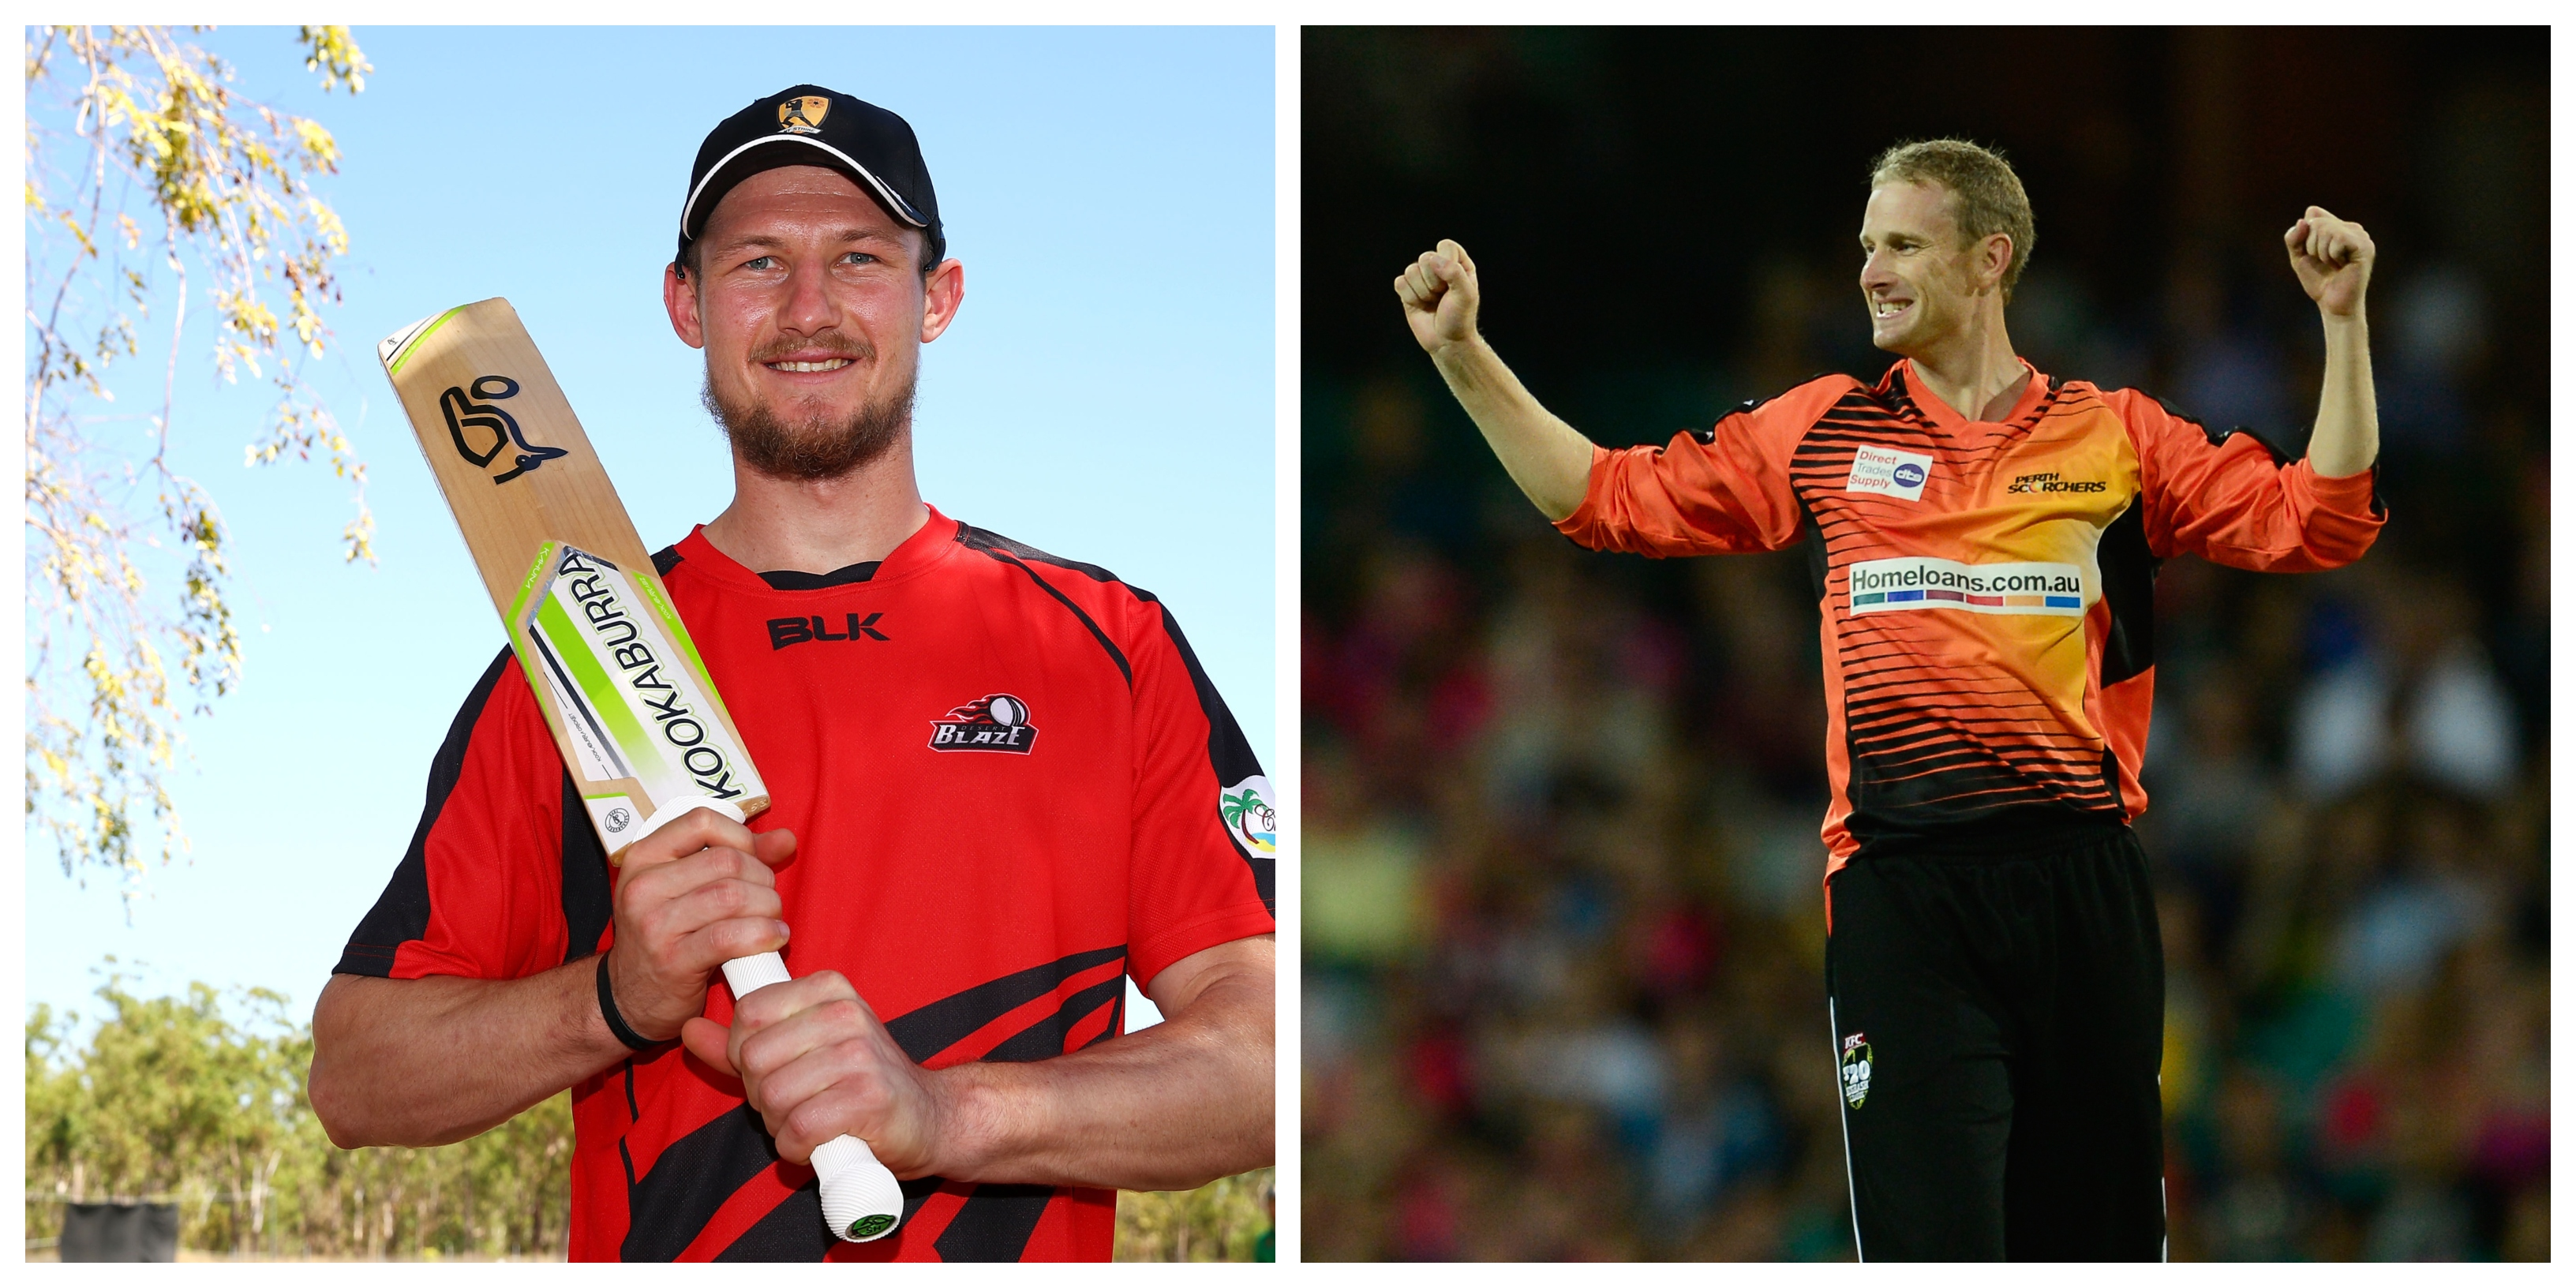 Voges is currently the Perth Scorchers coach, for whom Bancroft plays in the Big Bash League.